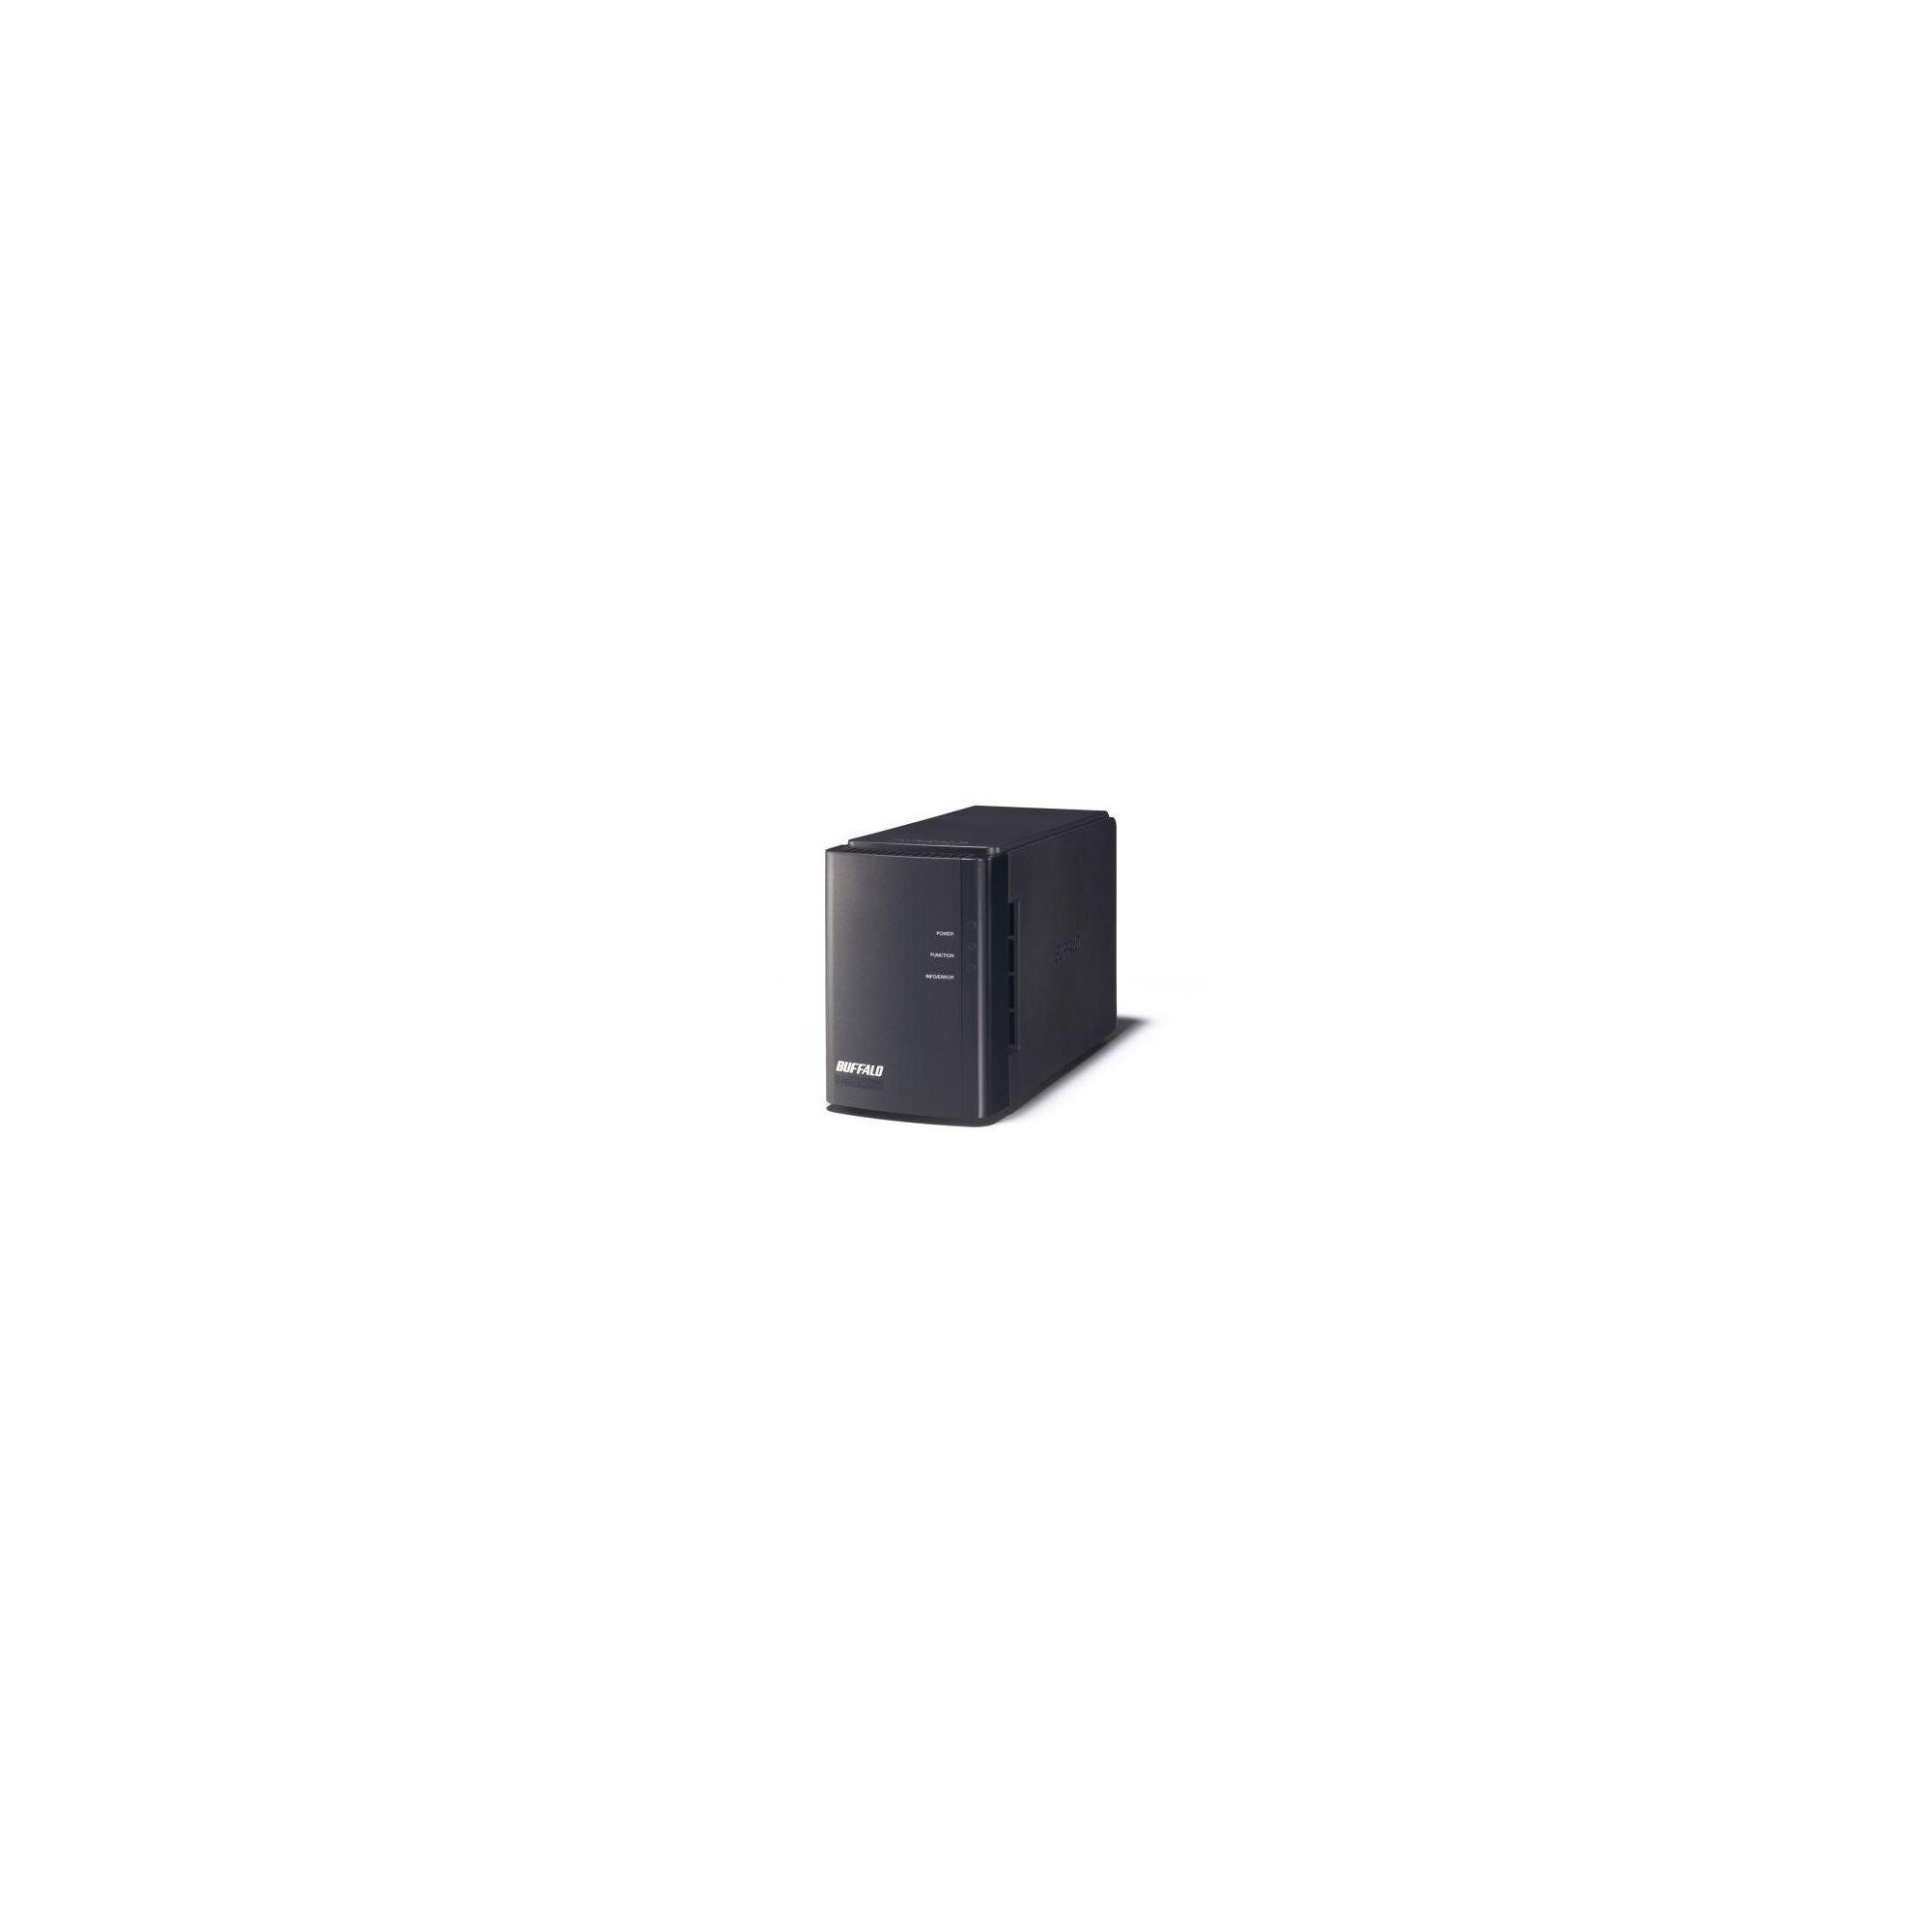 Buffalo LinkStation Duo 8TB (2x4TB) Shared NAS Device with USB 2.0/LAN Interface (Europe) CBID:2338528 at Tesco Direct